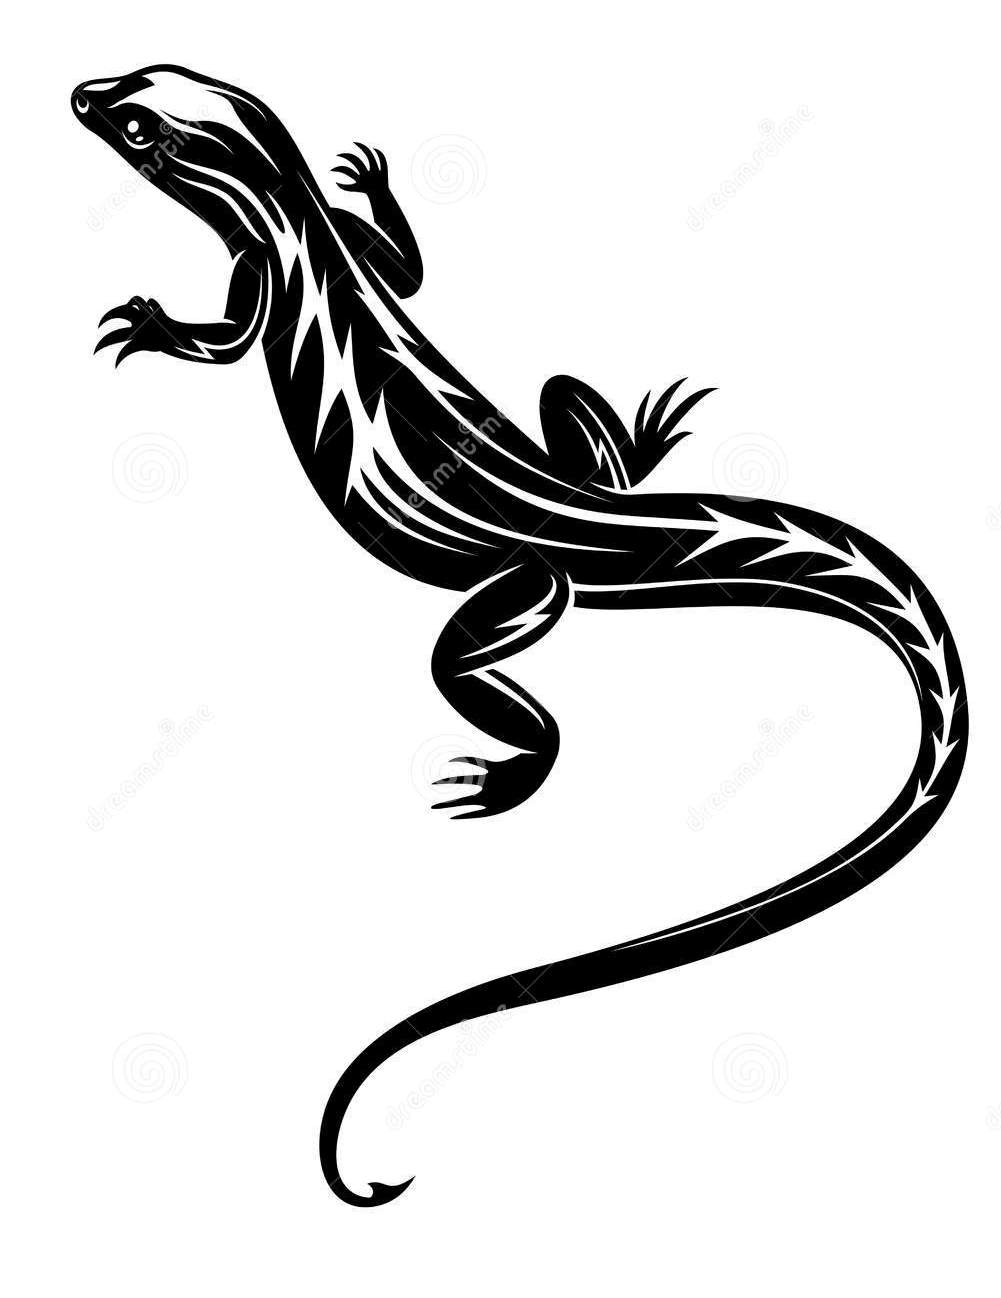 Black Lizard Reptile Tattoo Stencil